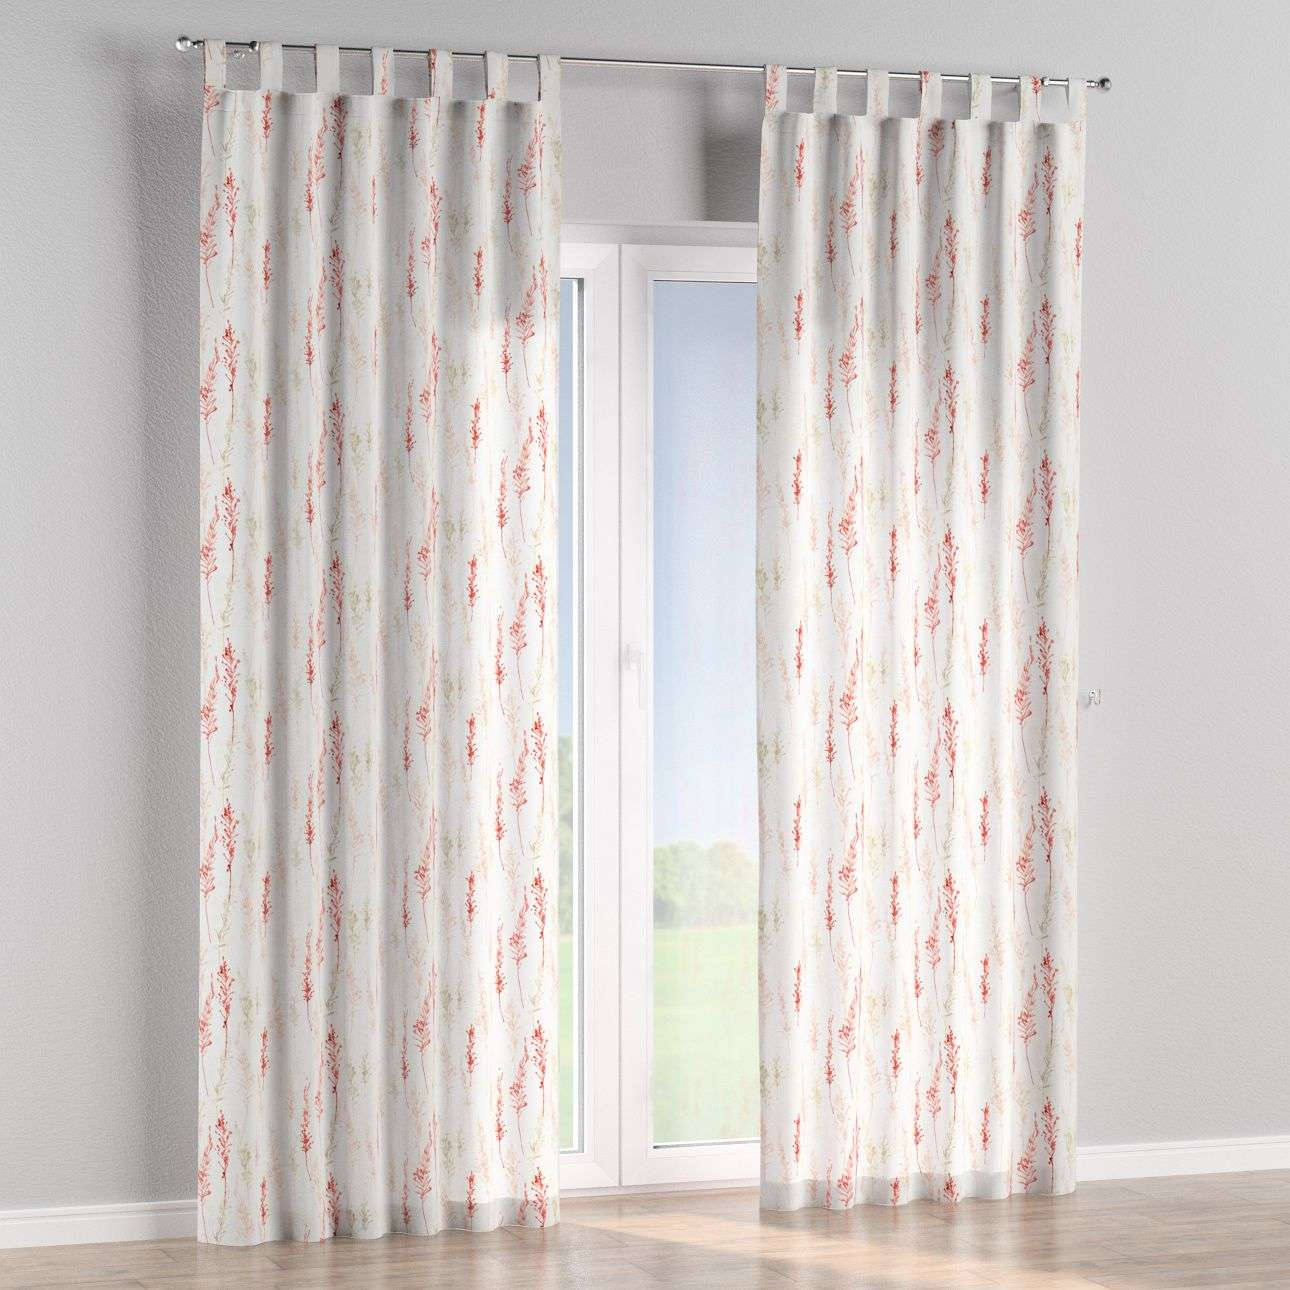 Tab top curtains in collection Acapulco, fabric: 141-37